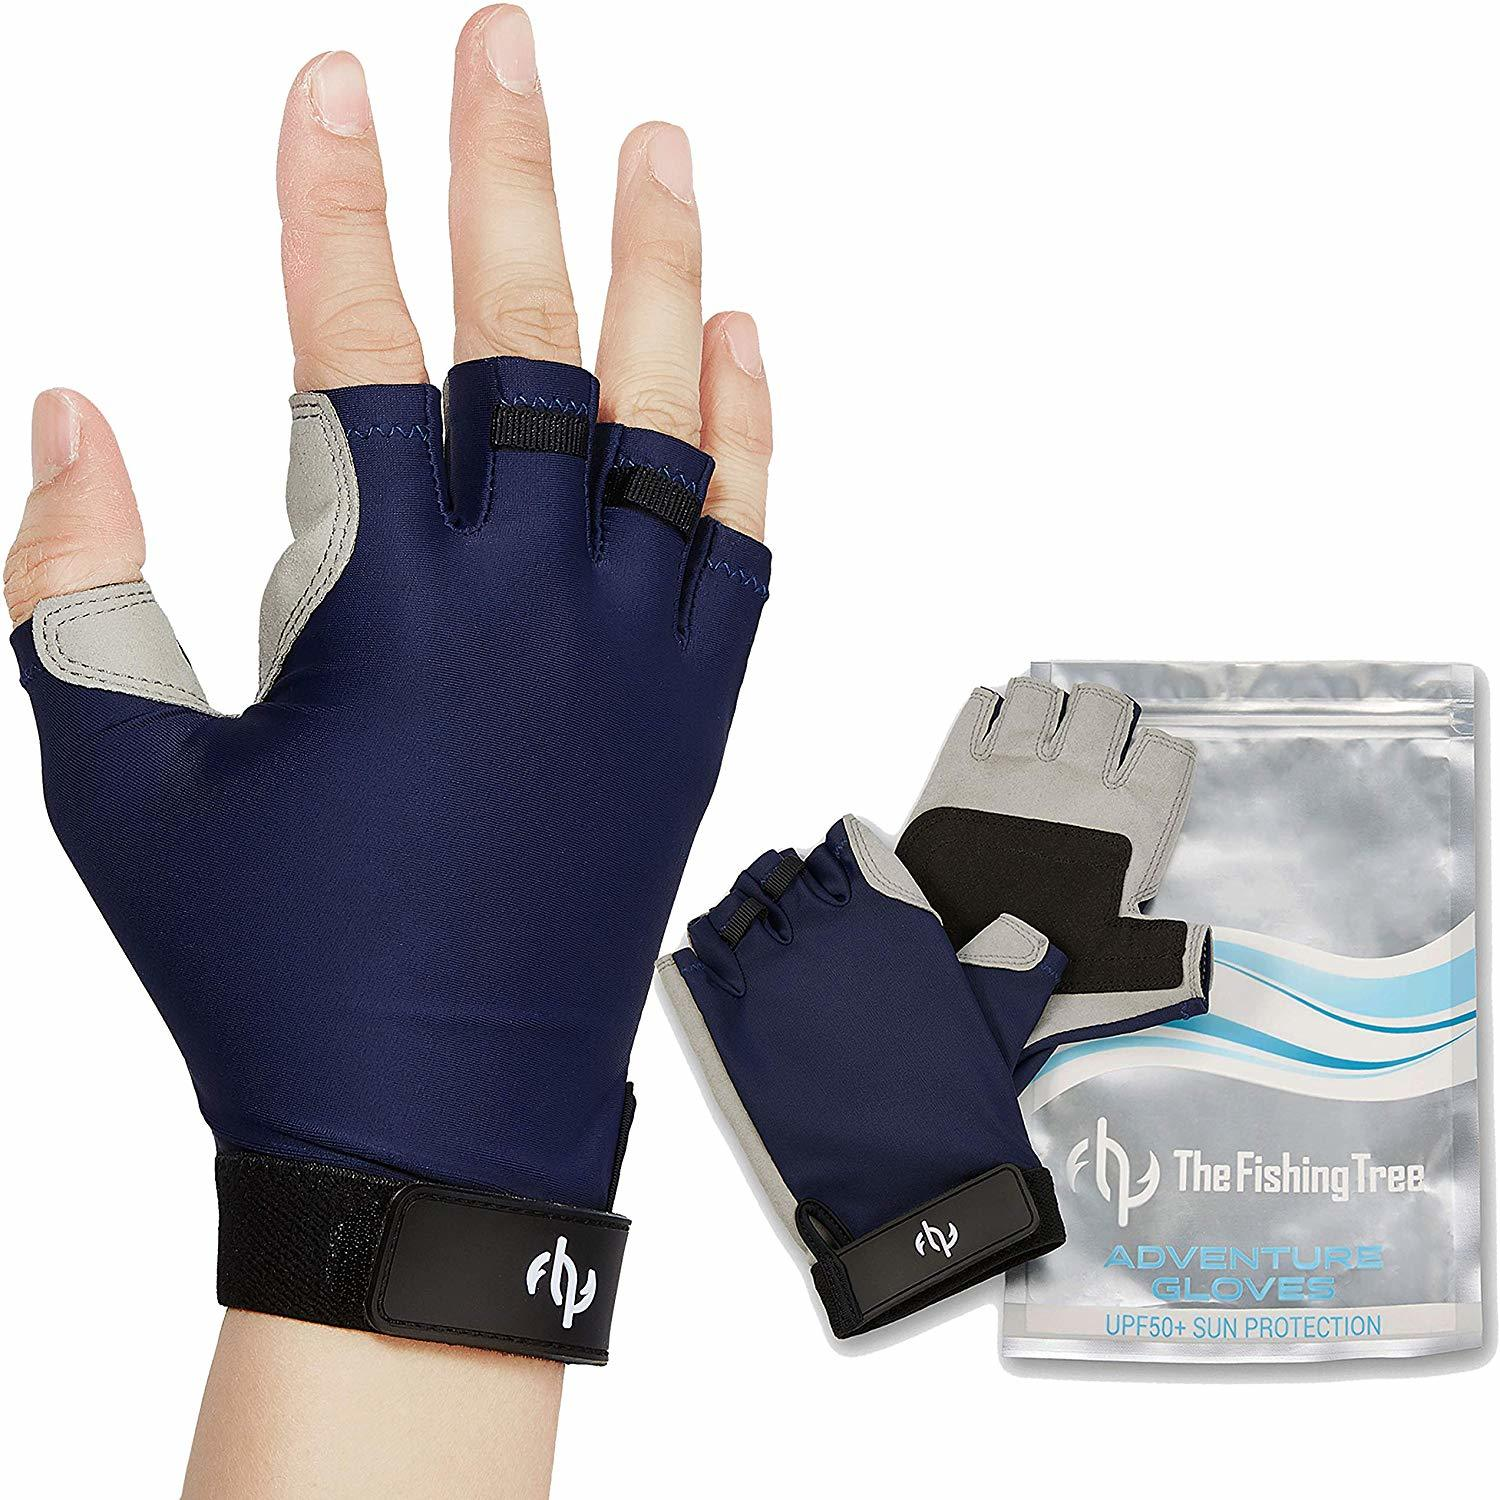 10 Sailing Gloves that will Protect Your Hands While Doing Water Sports 2